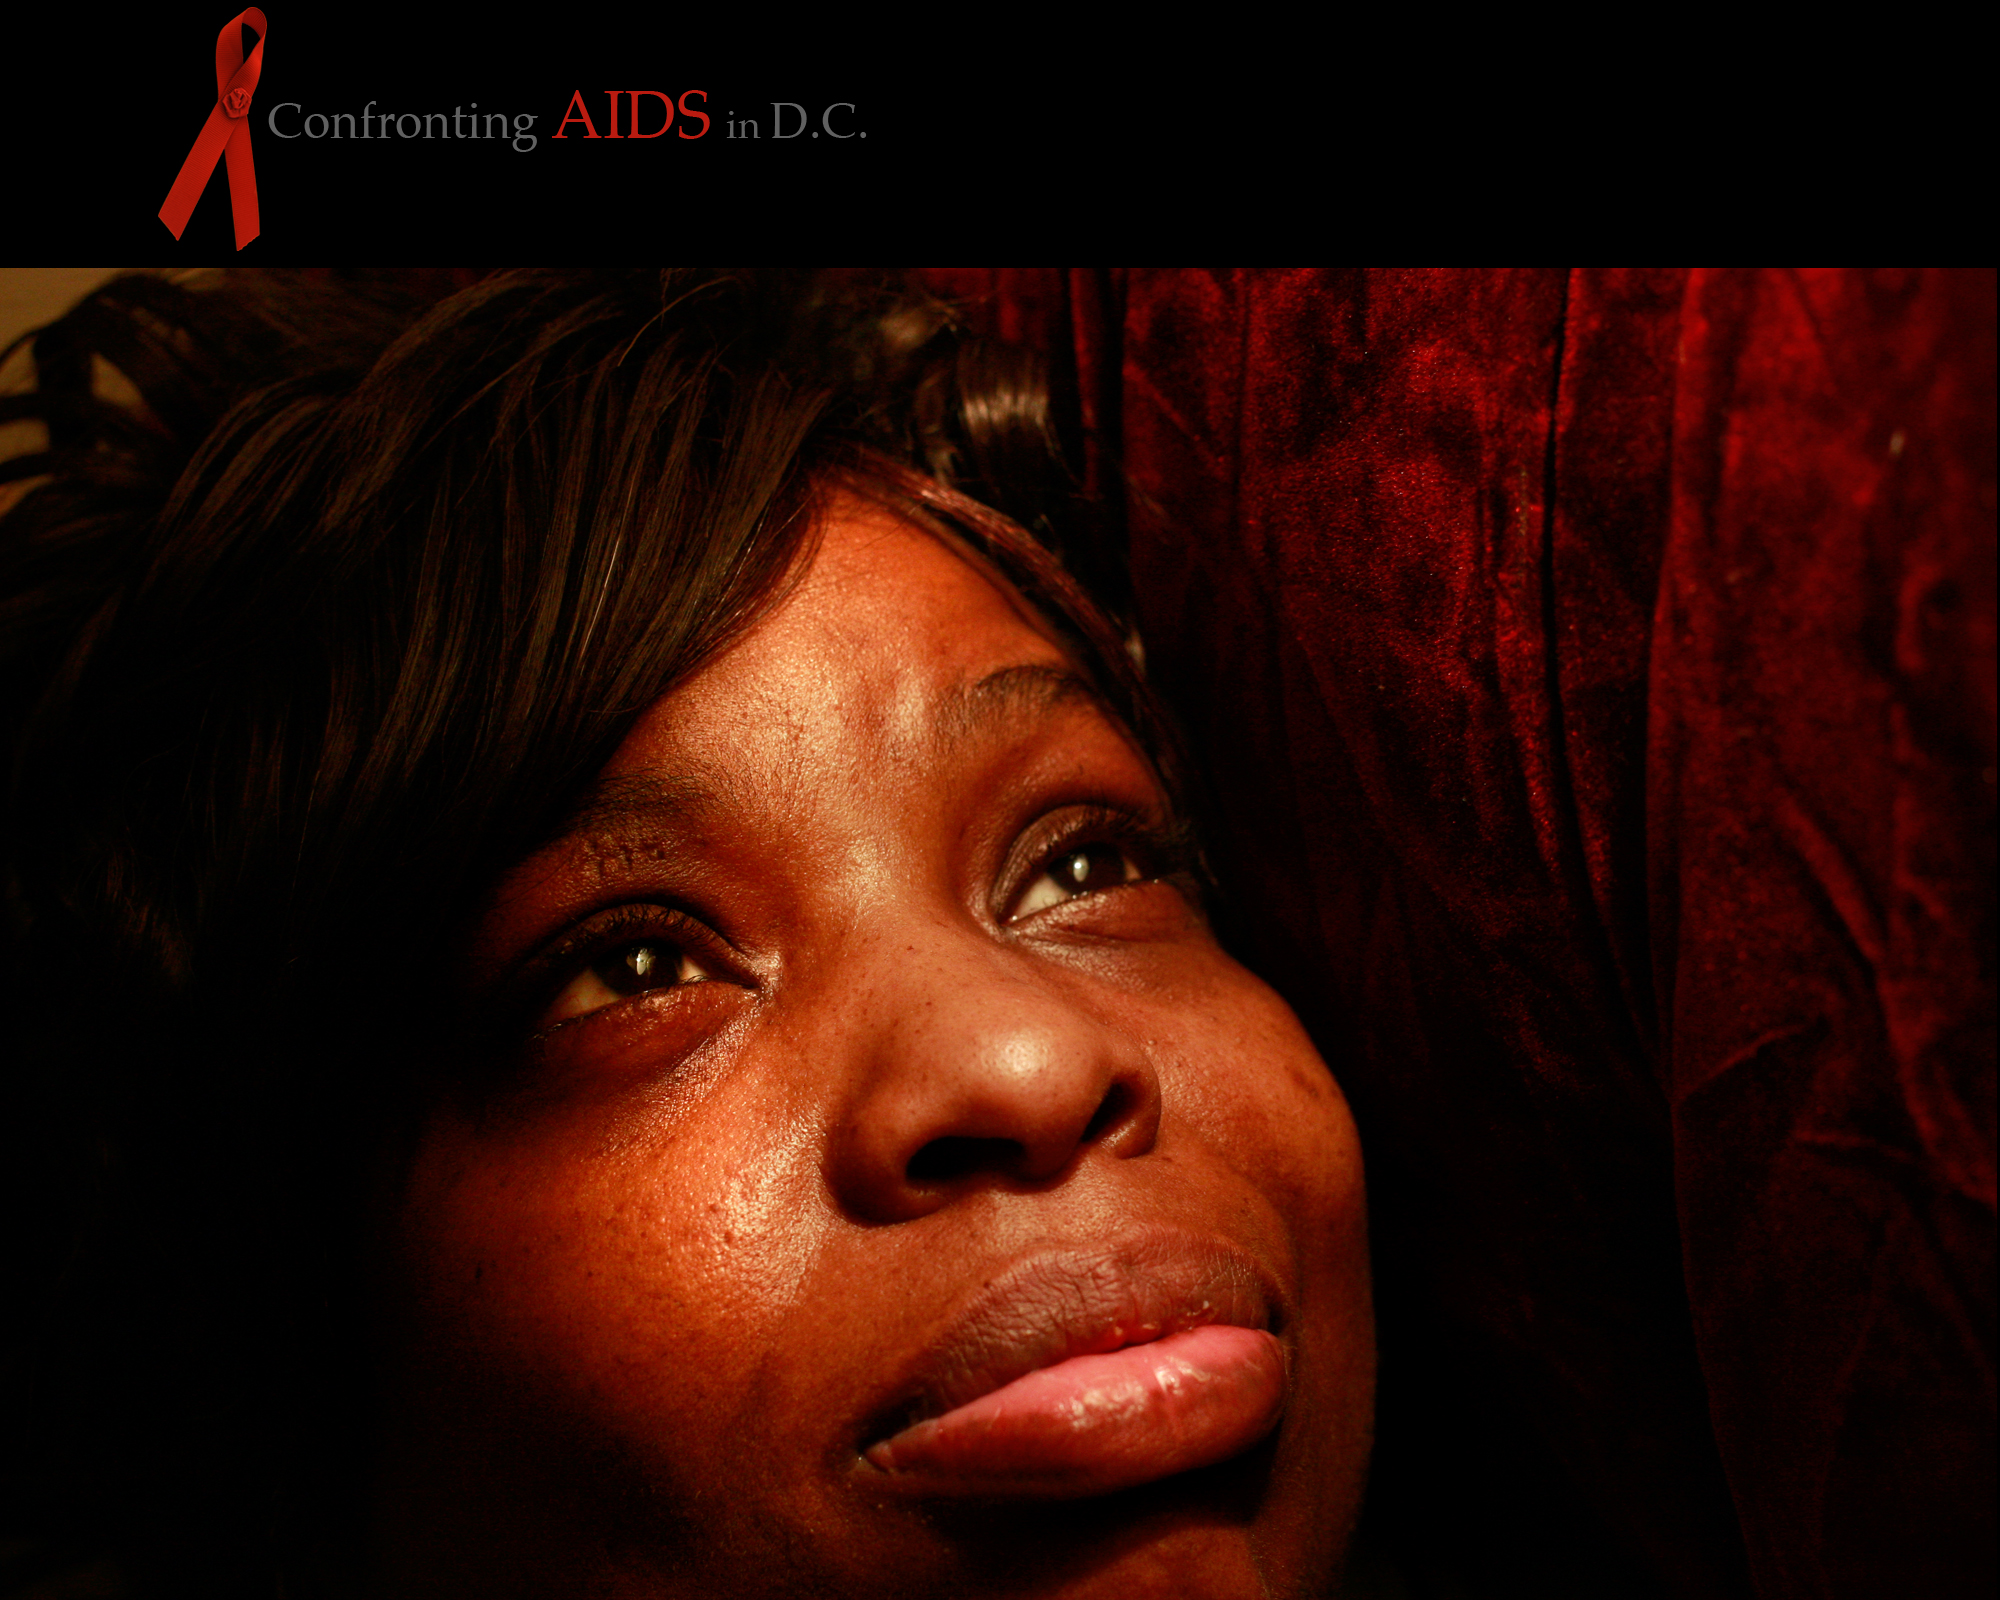 where more than 90 percent of women with the disease are blackAccording to the D.C. Department of Health, women accounted for a third of all newly reported HIV/AIDS cases between 2001 and 2006, with African­American women being disproportionately affected. Most of those women were of child-bearing age, putting their children at risk. The number of women in the District living with AIDS increased by more than 75 percent in that six-year period. The most common form of transmission for women was heterosexual contact. In the 14 years since she learned she was HIV-positive, Juanita Brown Sims has turned to her faith for support. Sims, 42, shares her poem, {quote}Don't Look at My HIV, You Won't See Me{quote} in the hope of giving support to others who have the virus. What are you looking at Are you looking at my HIV If you is you can't see me. I'm strong, I'm gifted, I'm lovable but most of all I'm free Don't look at my HIV you won't see me. I'm  funny, I''m smart, I'm a mother of three, I am wise and I dress to a tee. So don't look at my HIV you won't see me. I''m a child of God I don't have to steal, borrow, beg or rob. How funny you say you love me When you always worrying about my HIV. HIV lives with me but it's not all of me, you see. I am blessed by the God that lives within me He helps me to do my best So you could put your mind at rest, And look at me Not my HIV. Yes I messed up my life But I ain't going down without a fight, I can now sing and dance Because I'm giving my life a second chance. I'm somebody who's willing, ready, able and understanding And I don't mind living out my HIV on this planet So if you keep looking at my HIV You going to be so sorry you missed the God in me. ALL RIGHTS RESERVED ©2008 Nikki Kahn